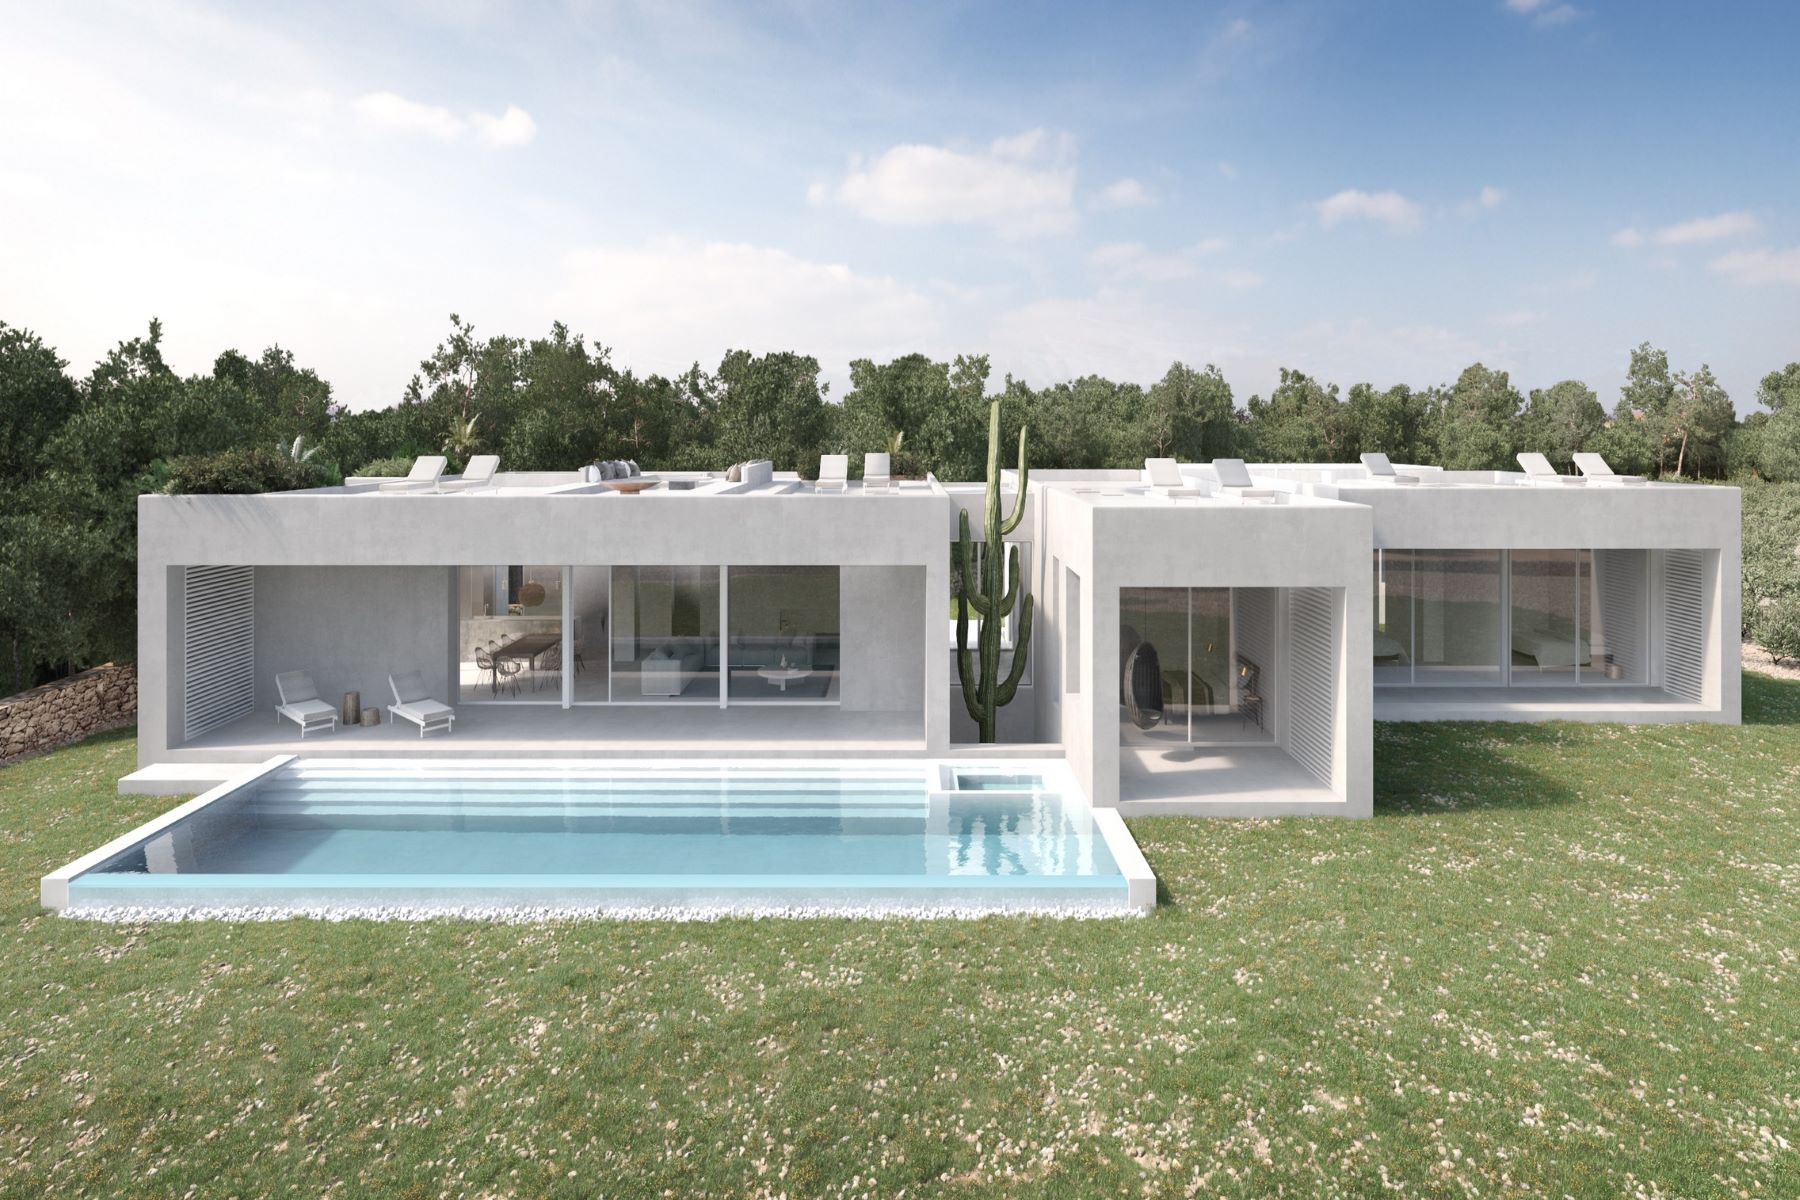 Single Family Homes for Sale at Modern Waterfront Home under construction - Direct Sea View Cap de Barbarie Formentera, Balearic Islands 07860 Spain